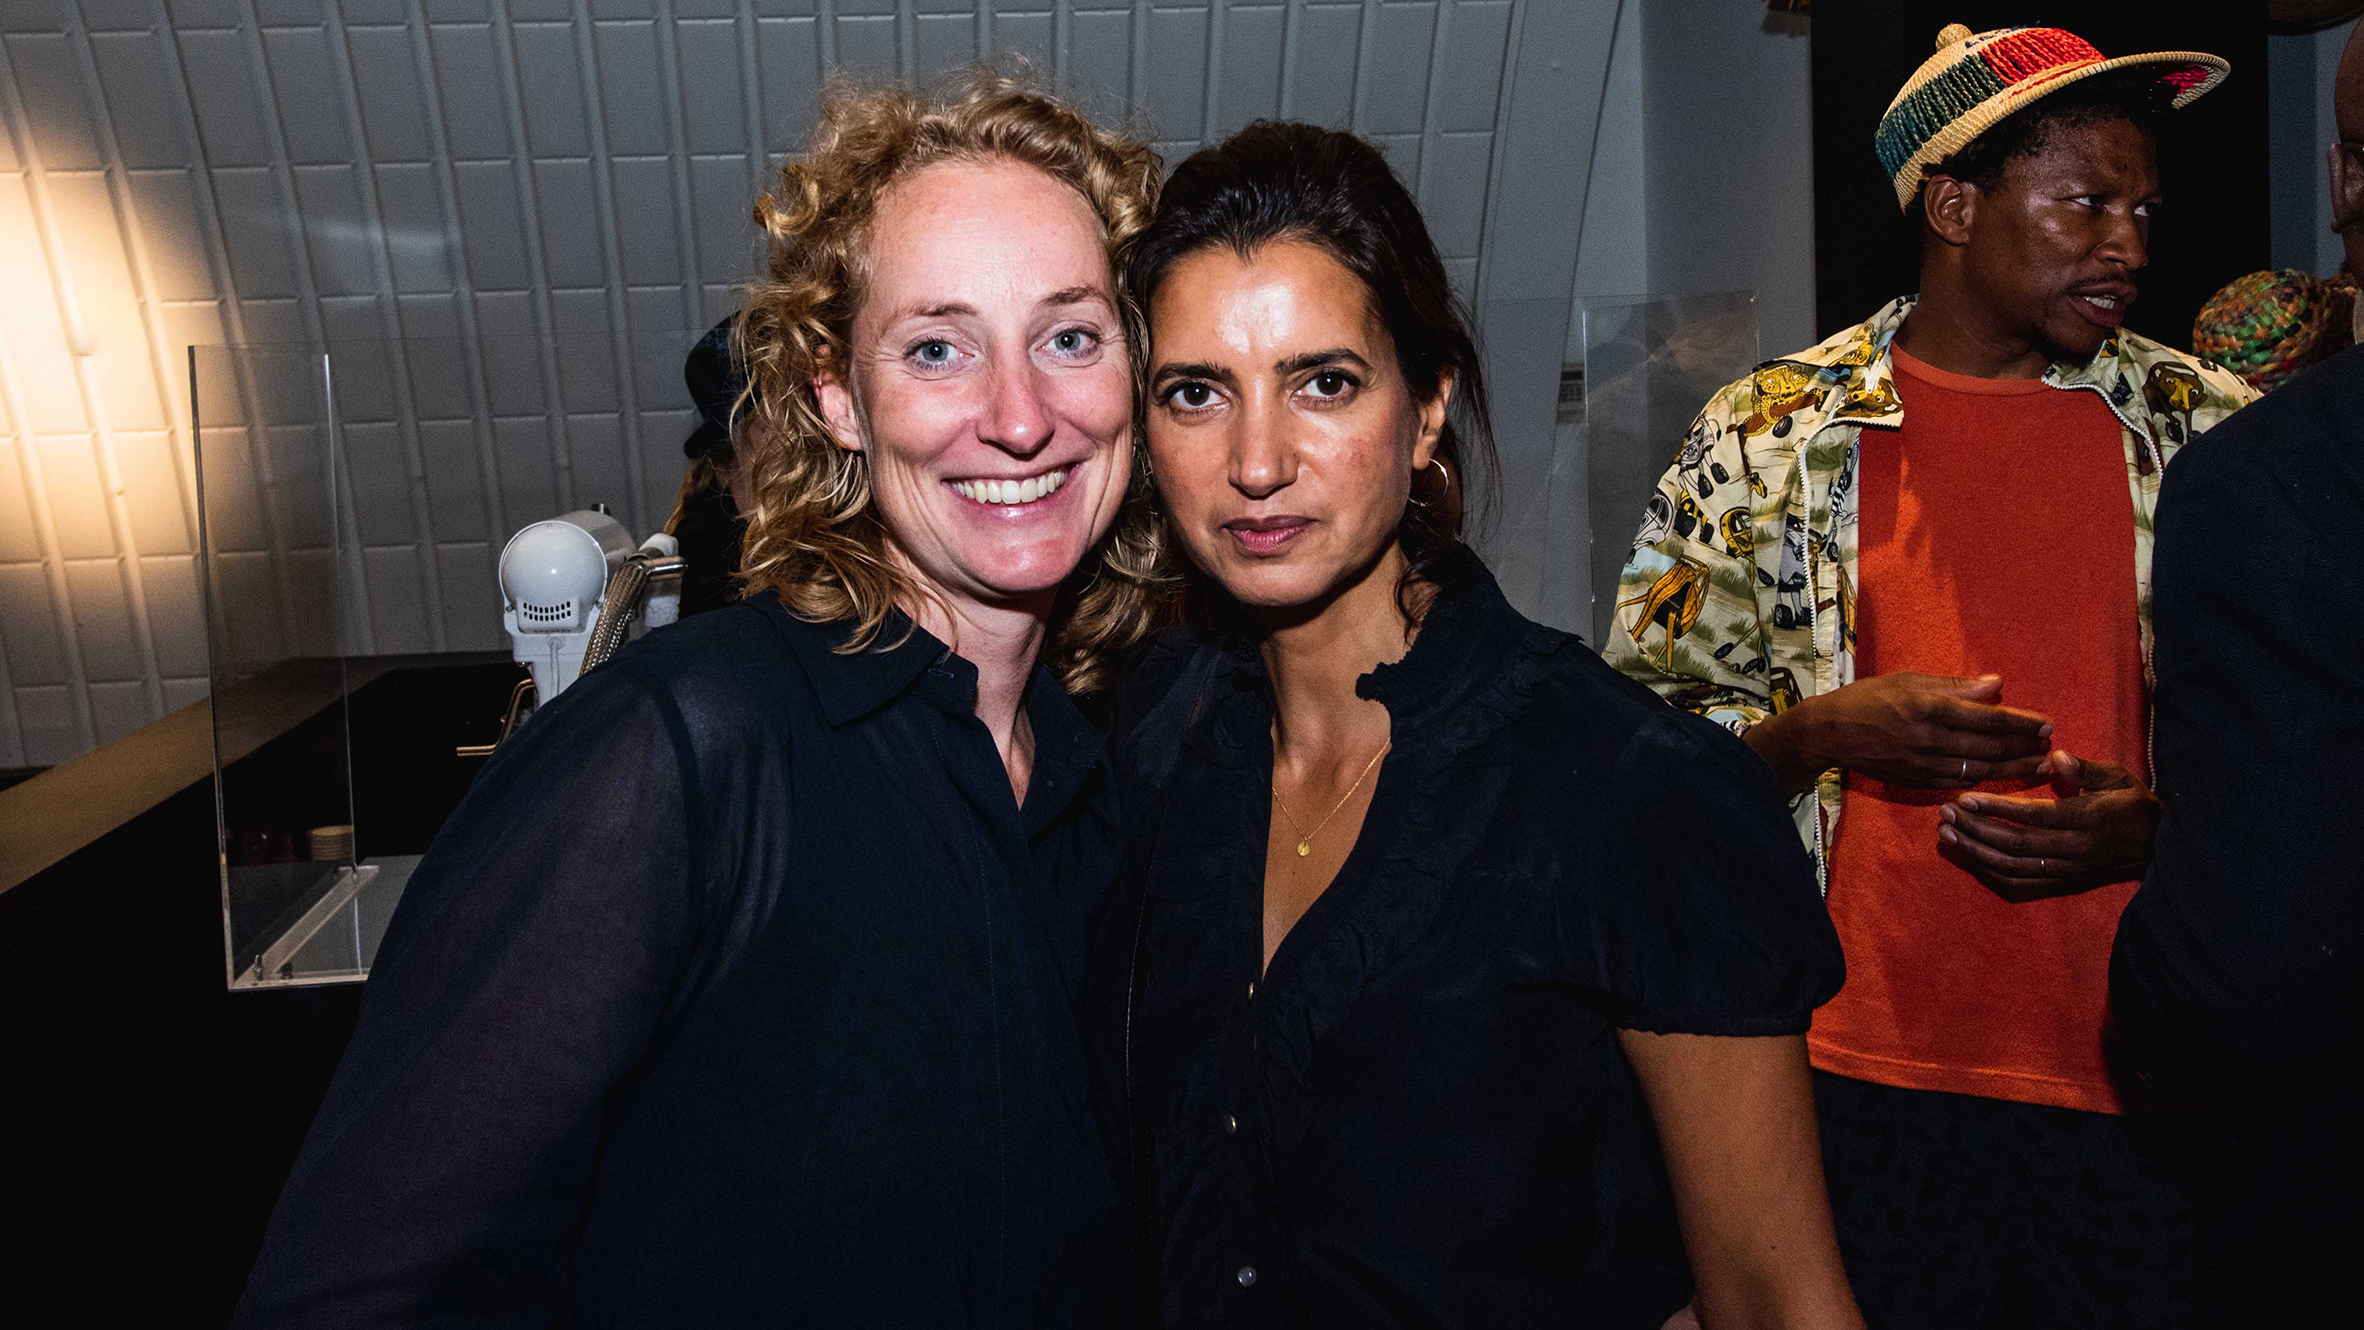 Atelier NL co-founder Lonny van Ryswyck with Dezeen founder Rupinder Bhogal